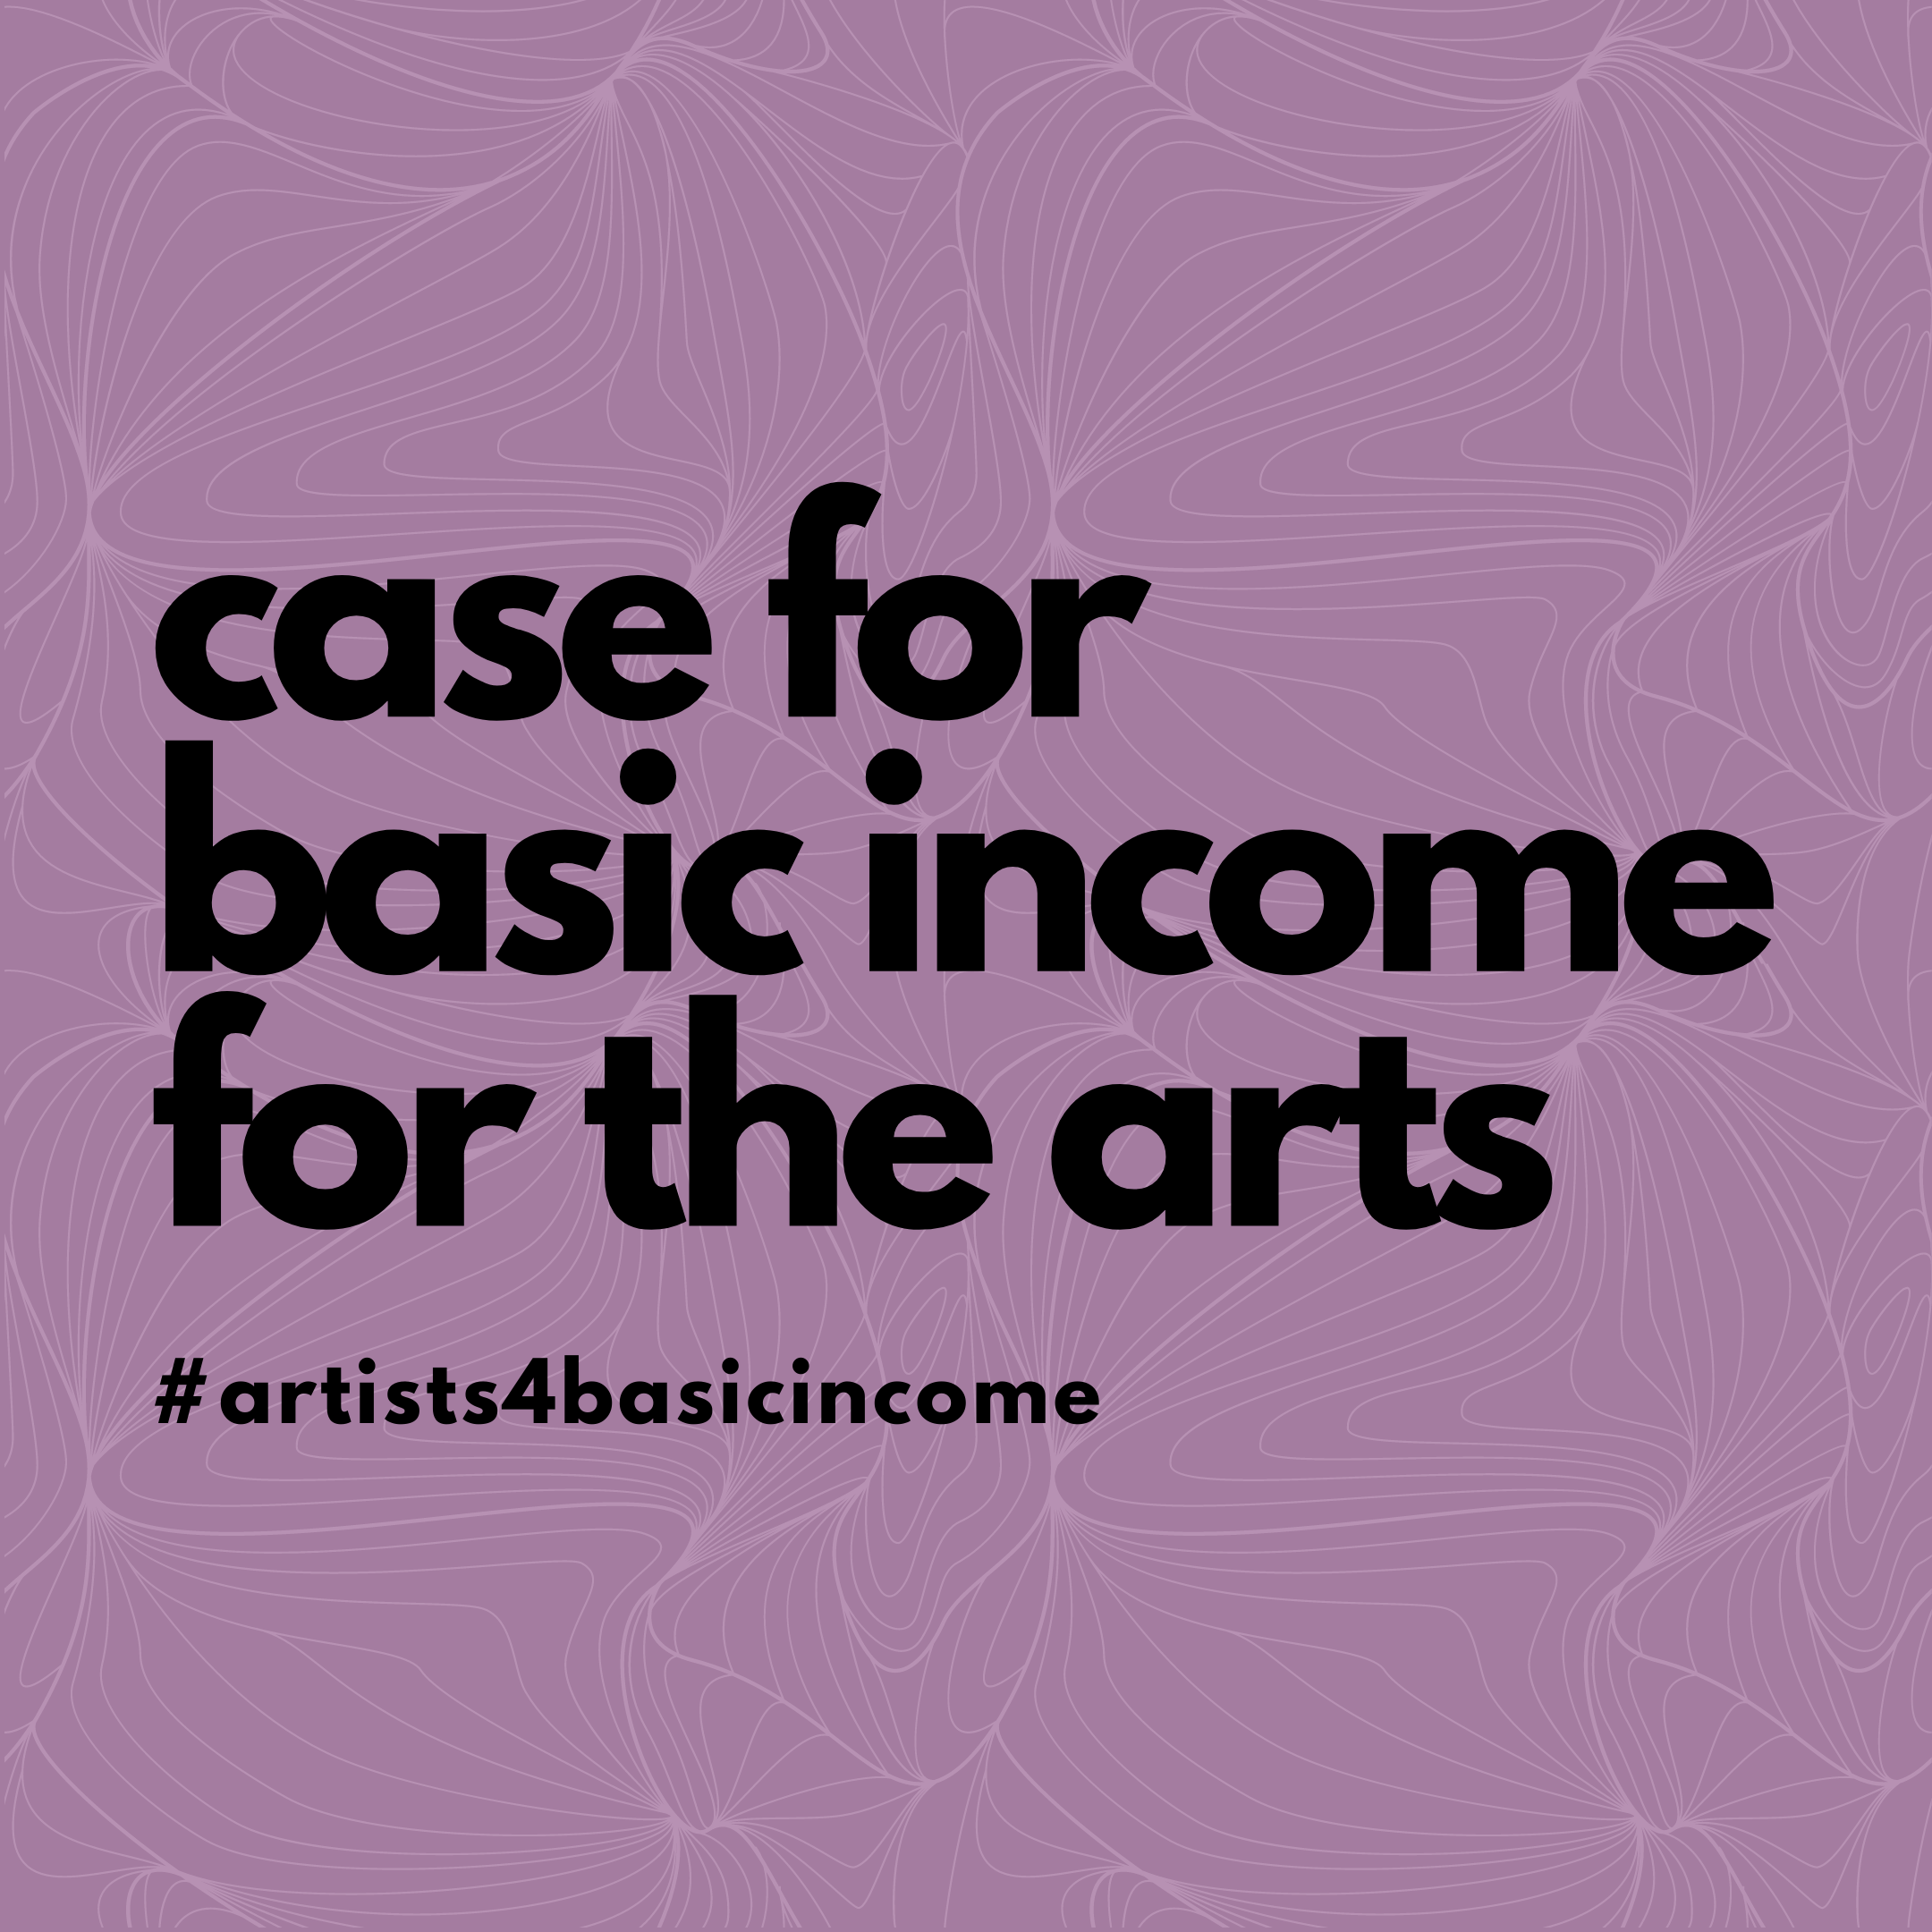 case for basic income for the arts #artists4basicincome